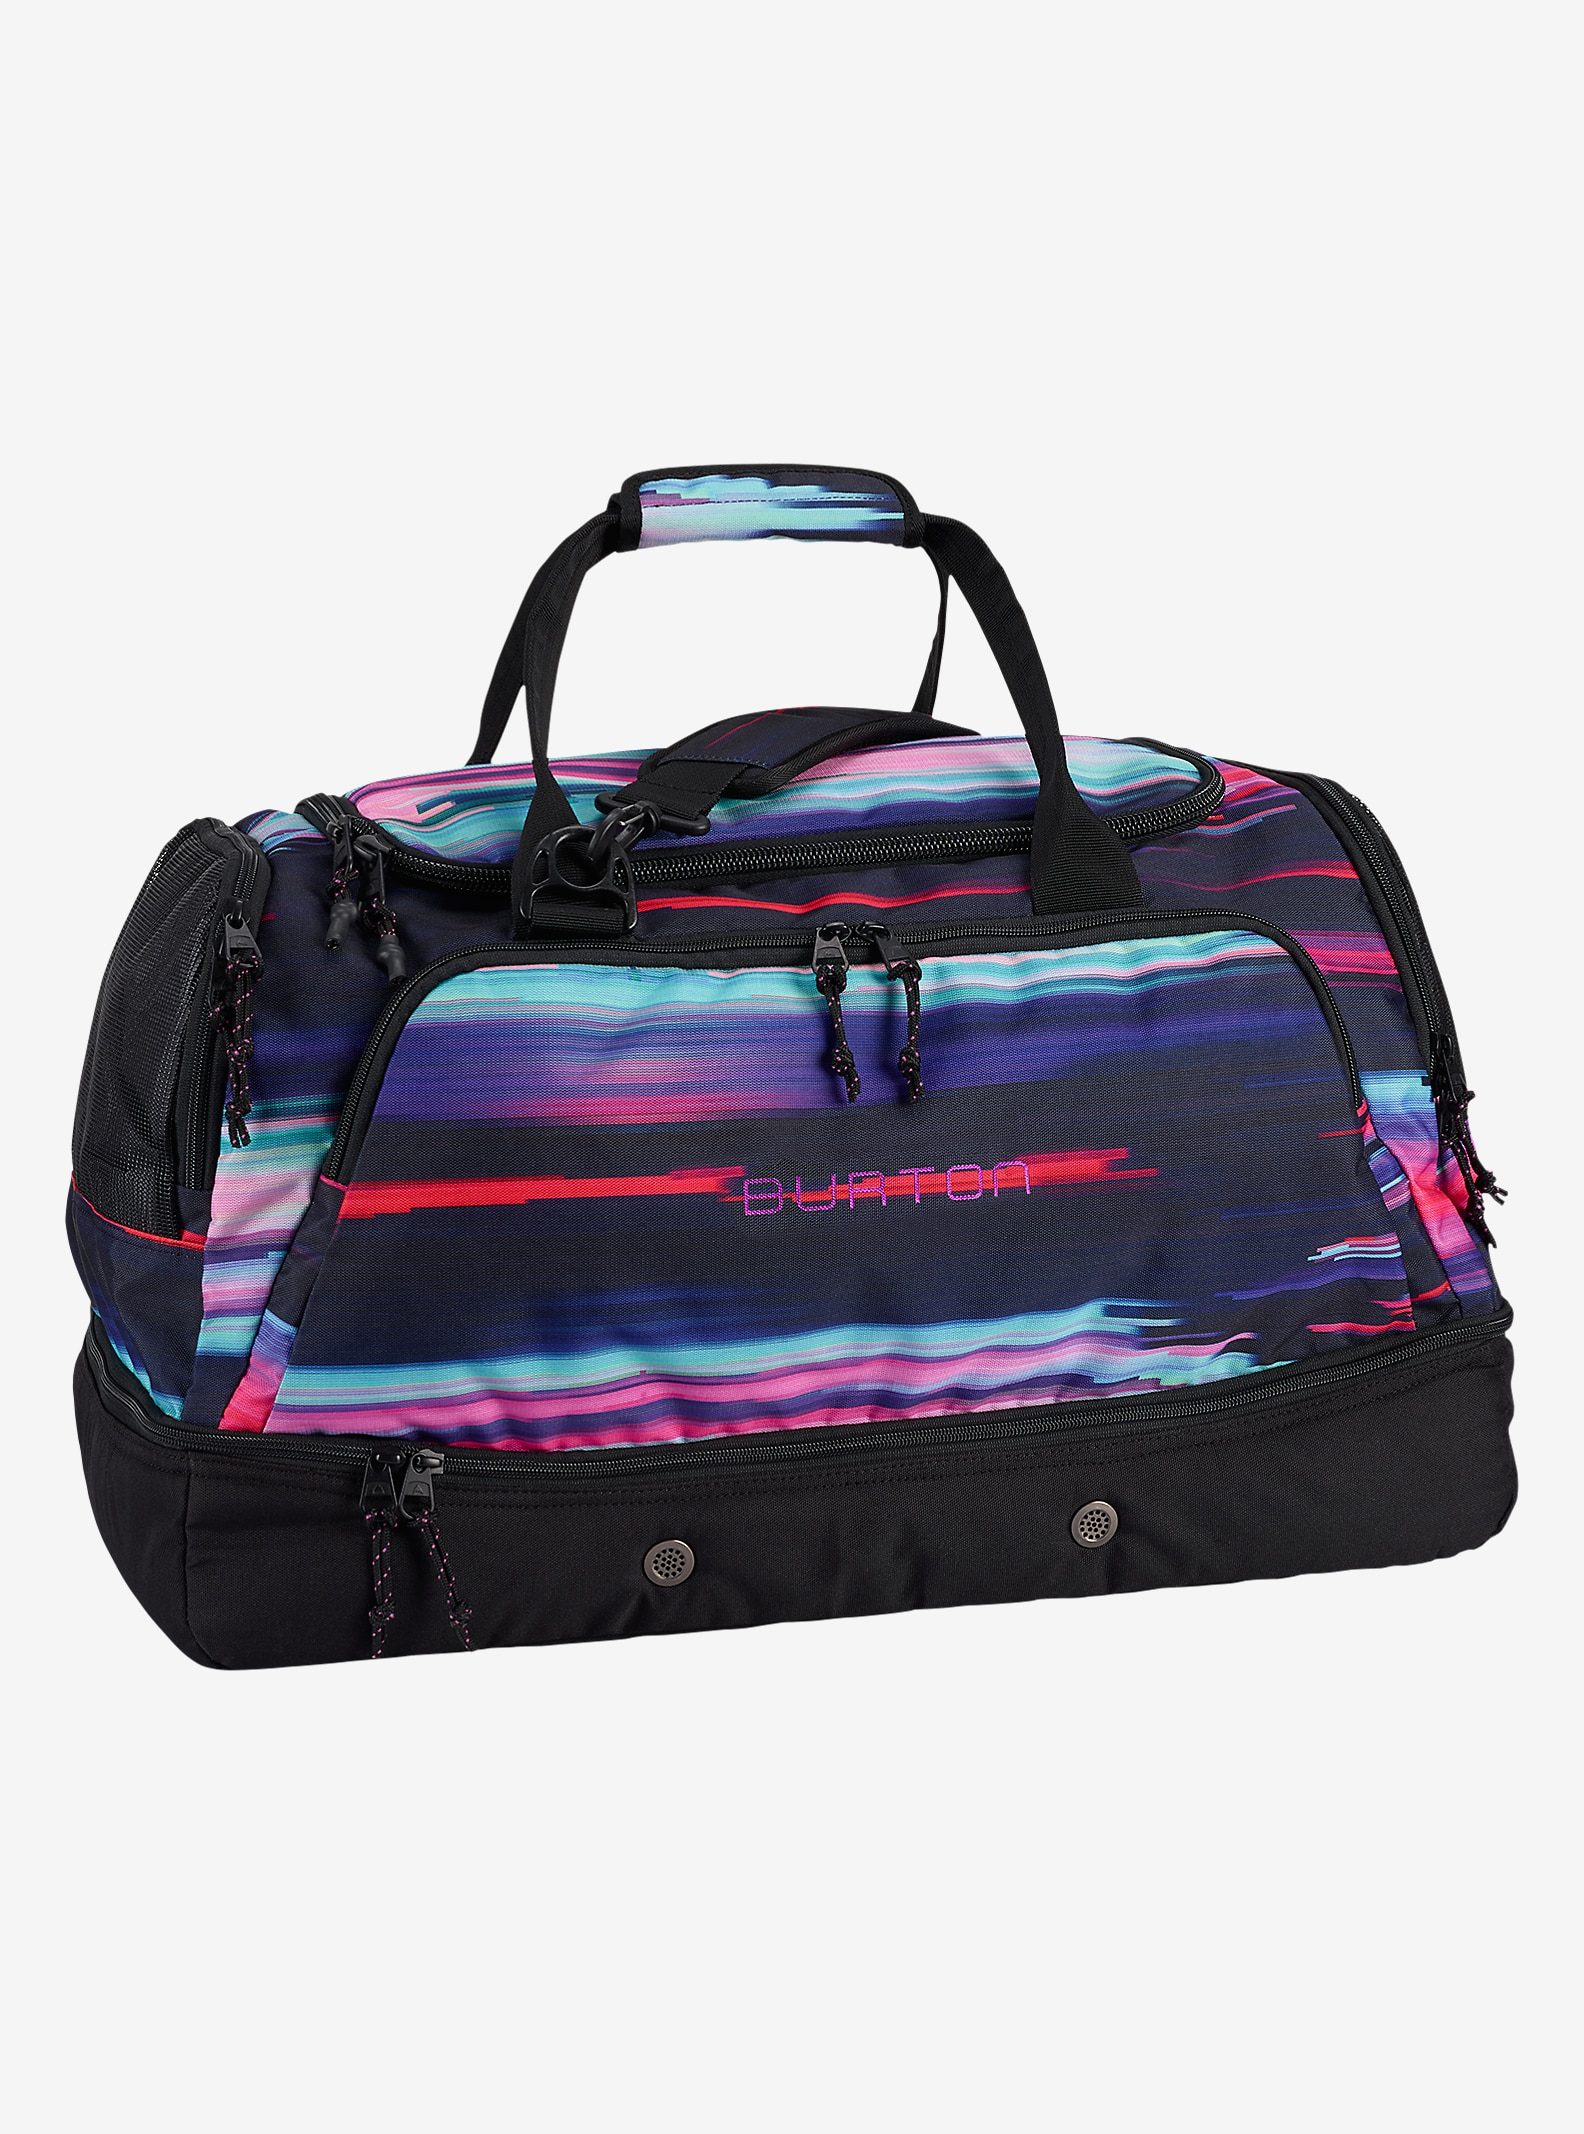 Burton Rider's Bag 2.0 shown in Glitch Print